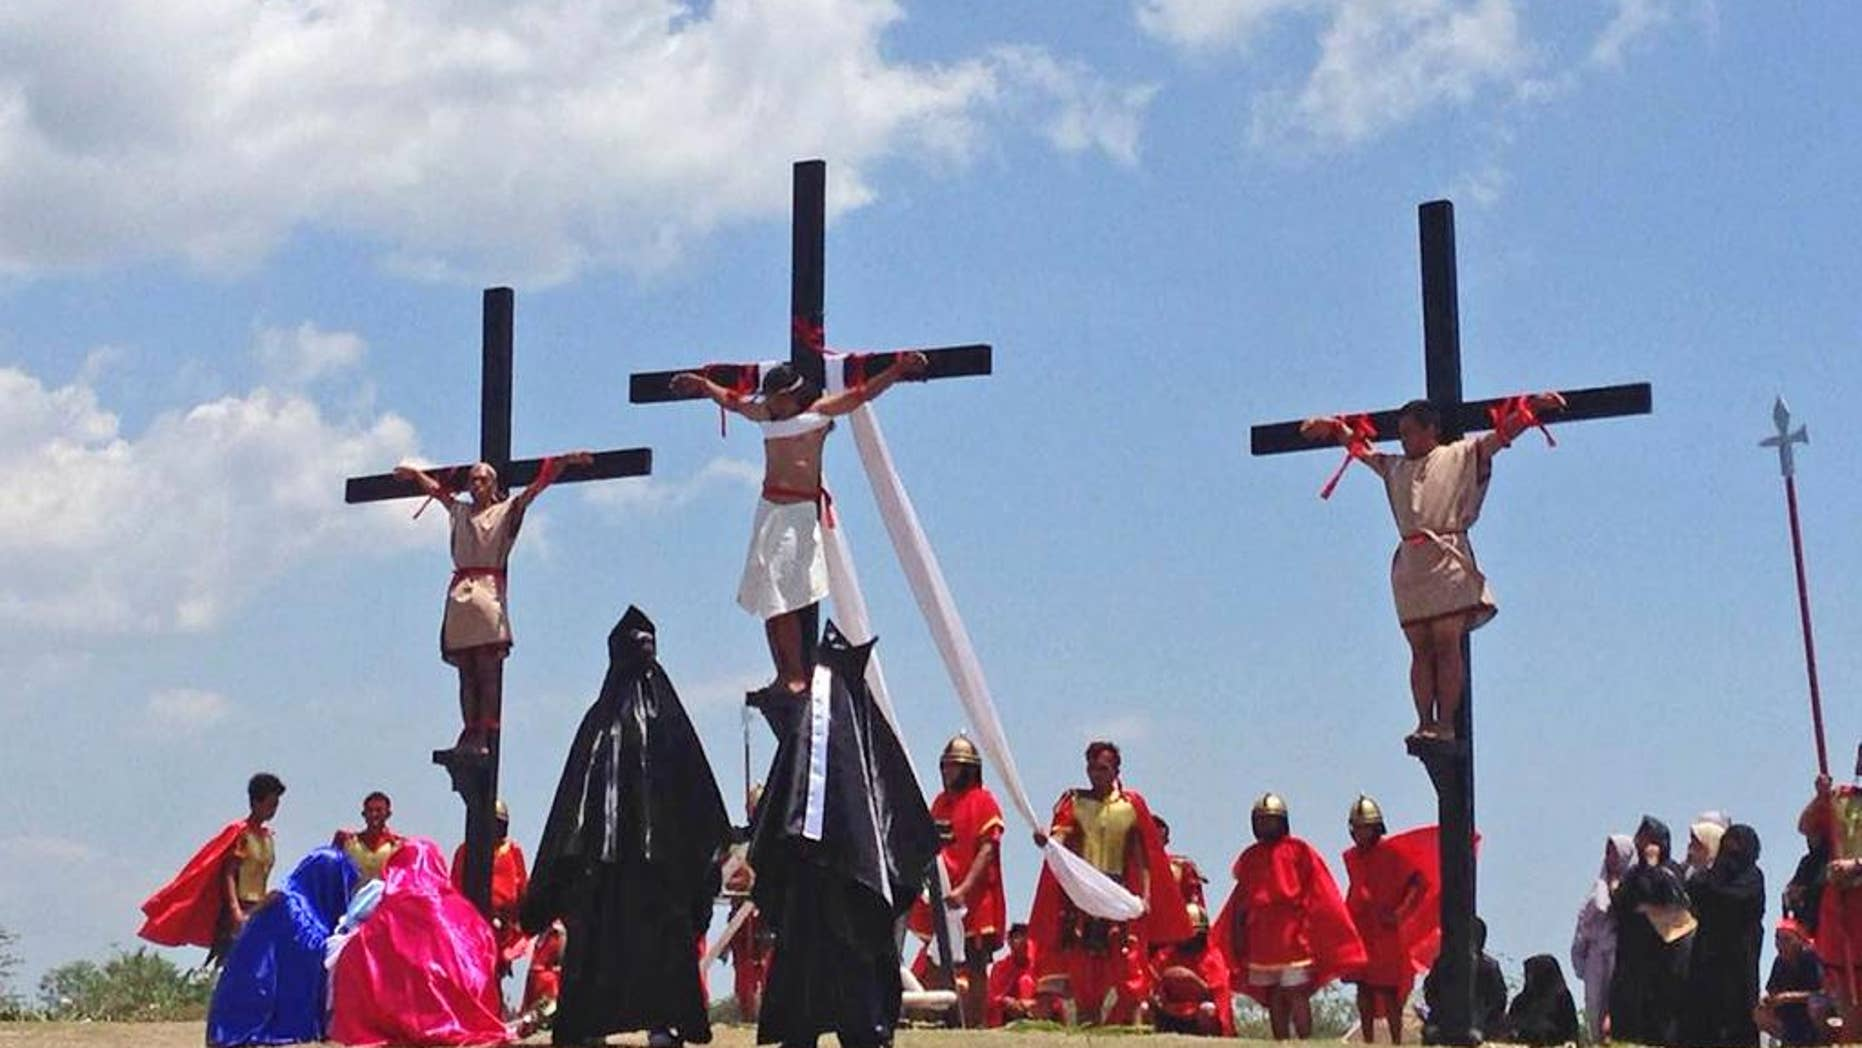 Filipino penitents on wooden crosses take part in a reenactment during Good Friday rituals on Friday, April 14, 2017 at Cutud, Pampanga province, northern Philippines. They were remembering Jesus Christ's suffering and death. (AP Photo/Vicente Gonzales)